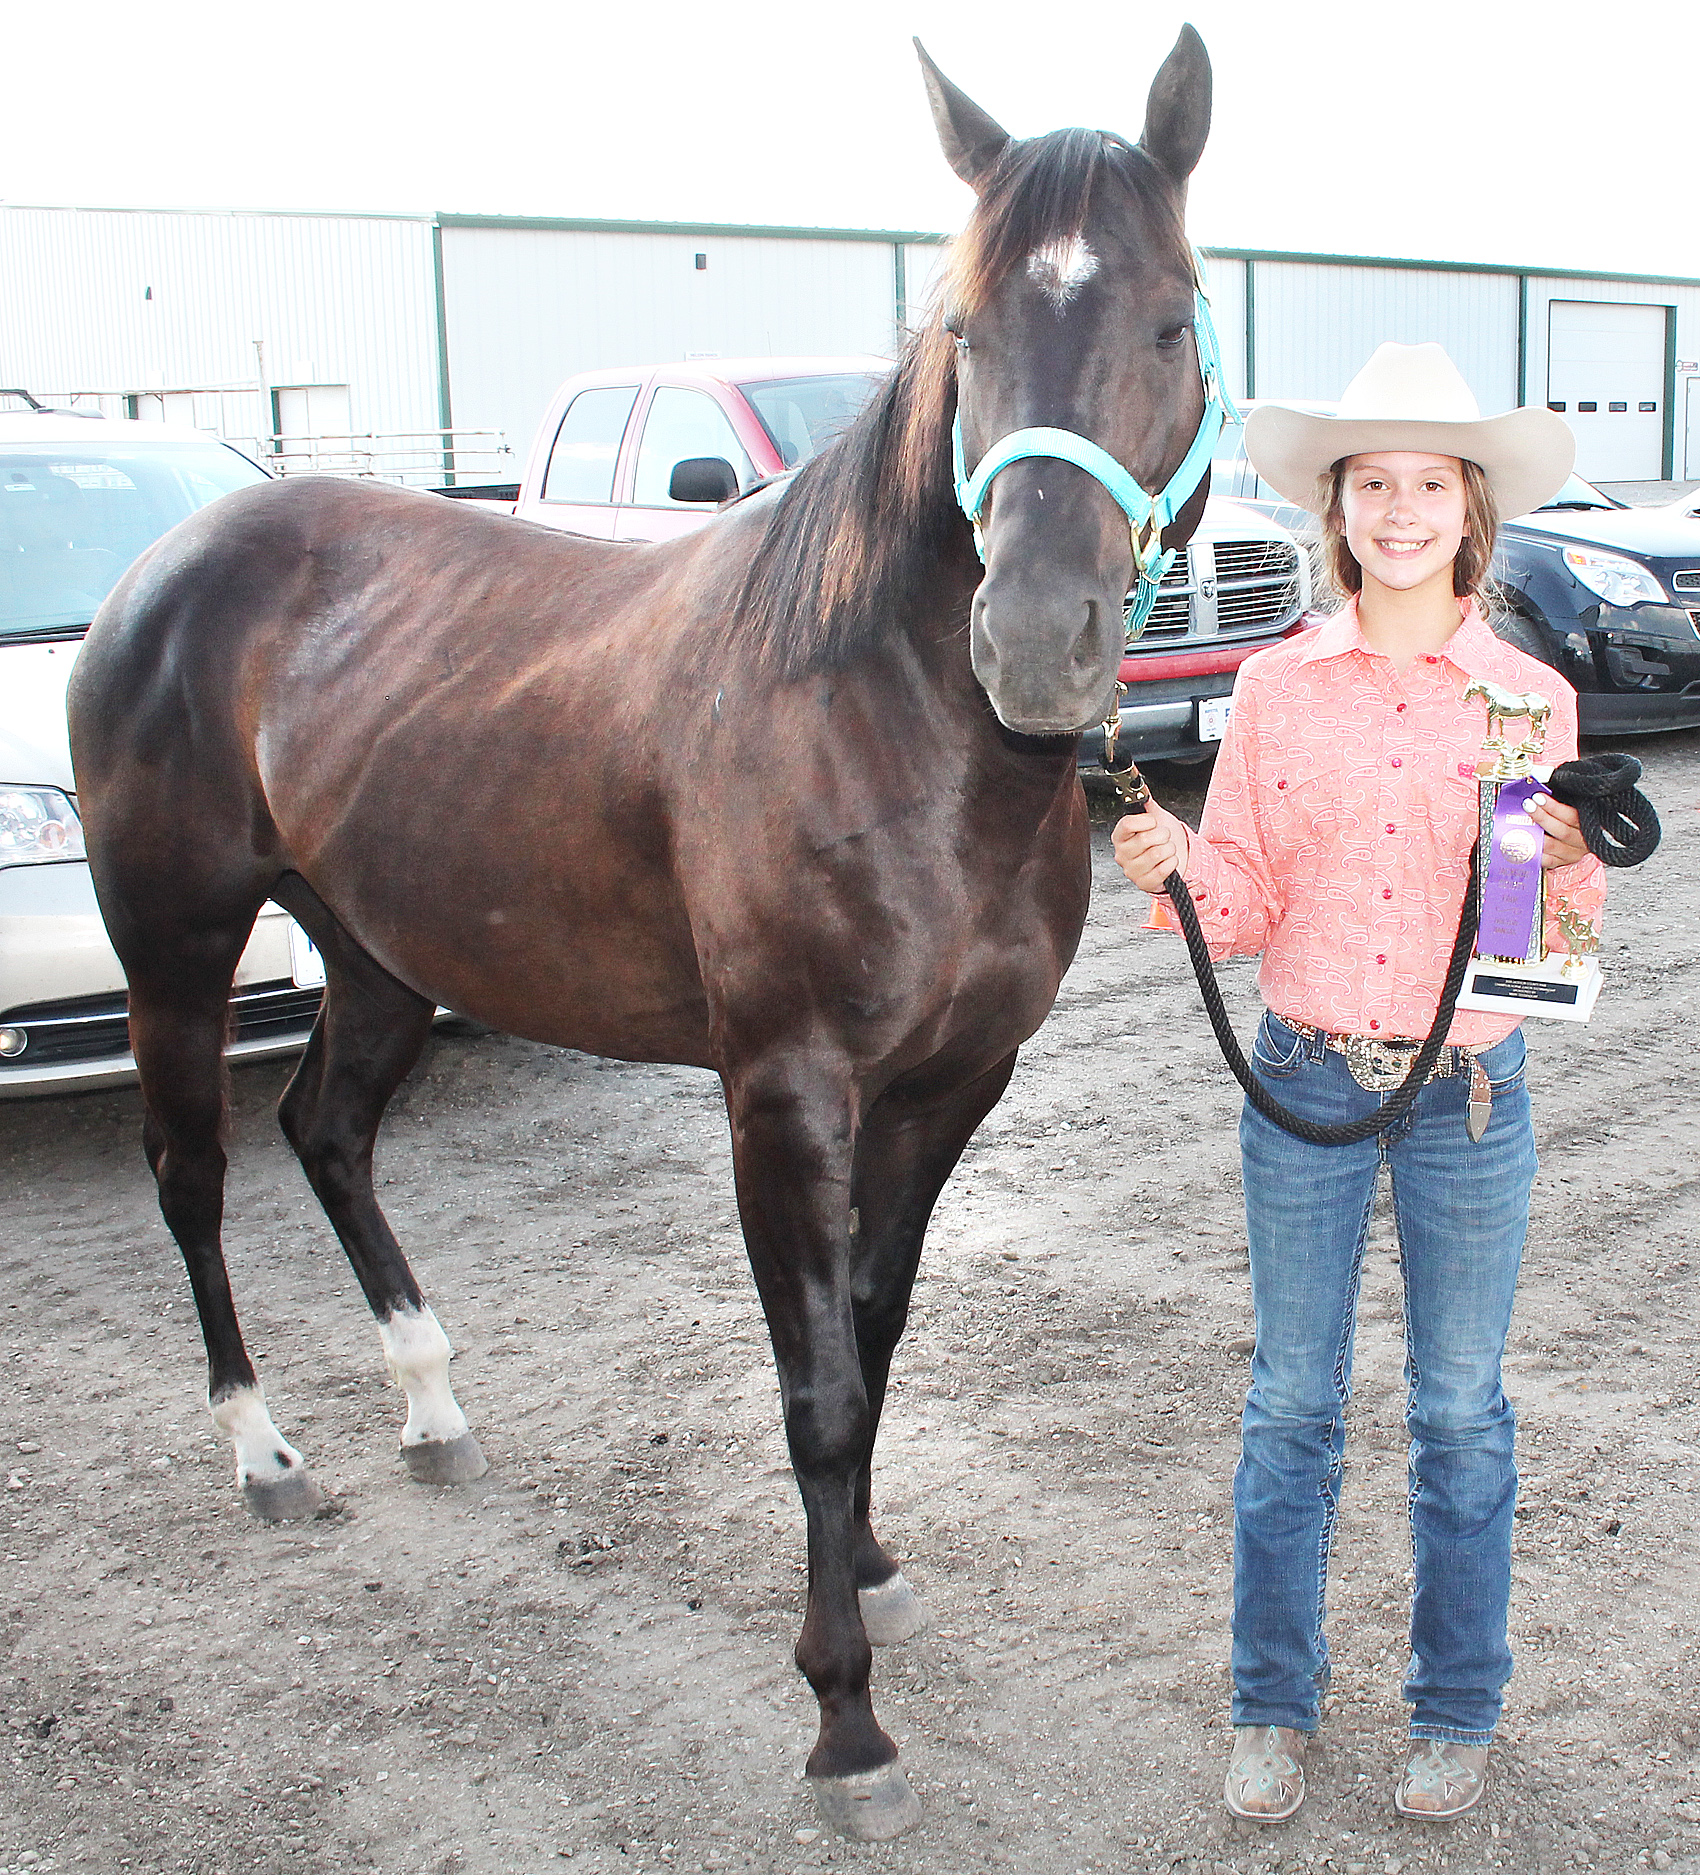 Presley Phillips, a member of the Denison Builders 4-H club, competed in events for ages 10-13 in this year's horse show, winning top honors in junior showmanship.